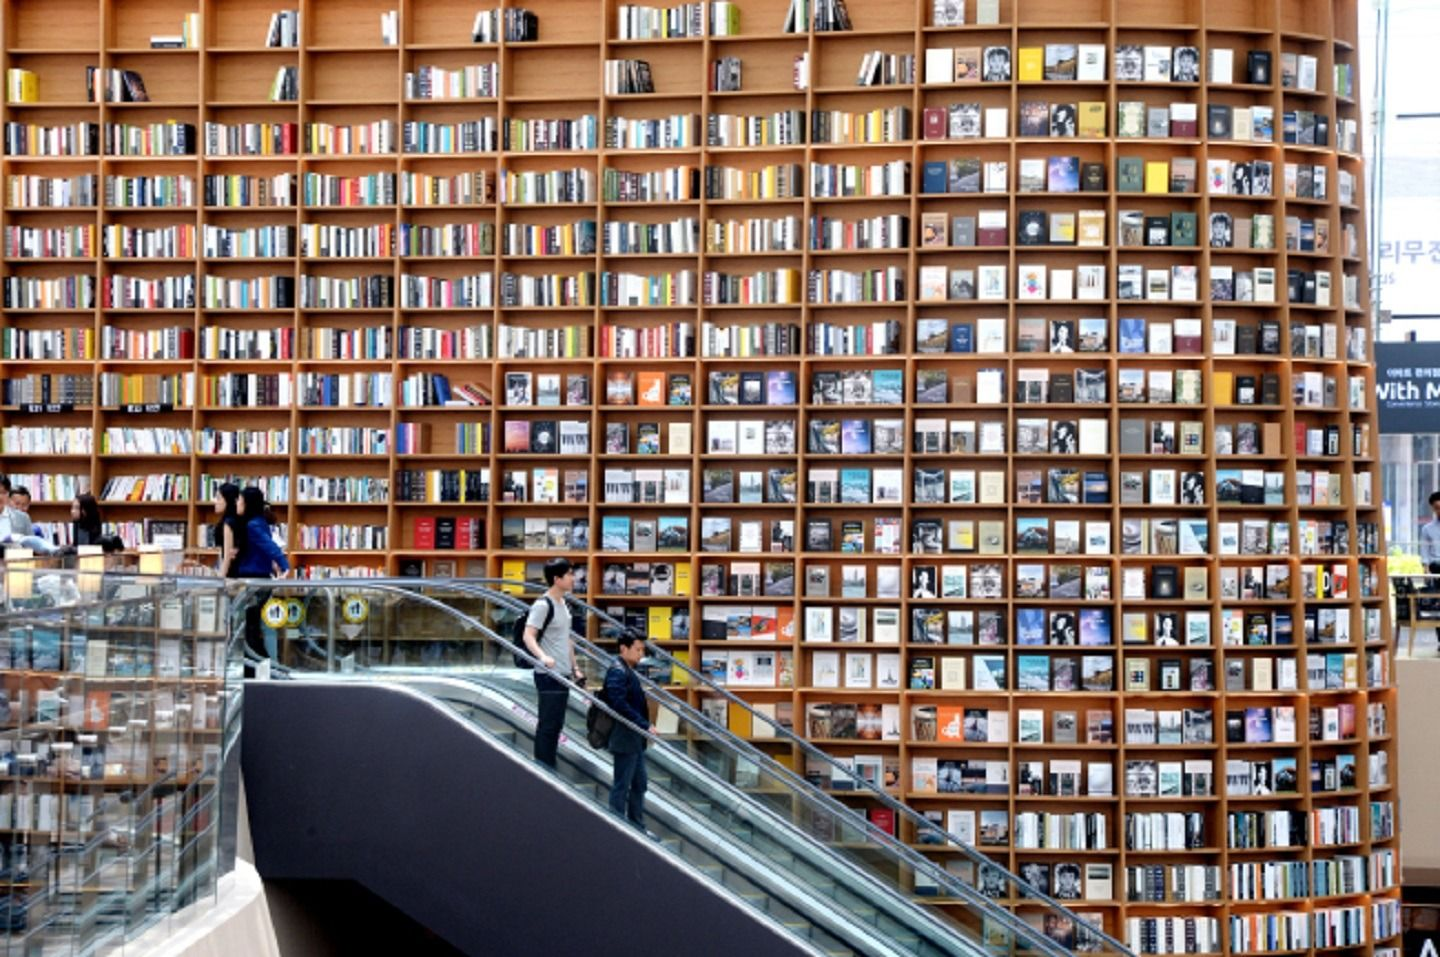 New South Korean Library Looks Exactly Like The One In